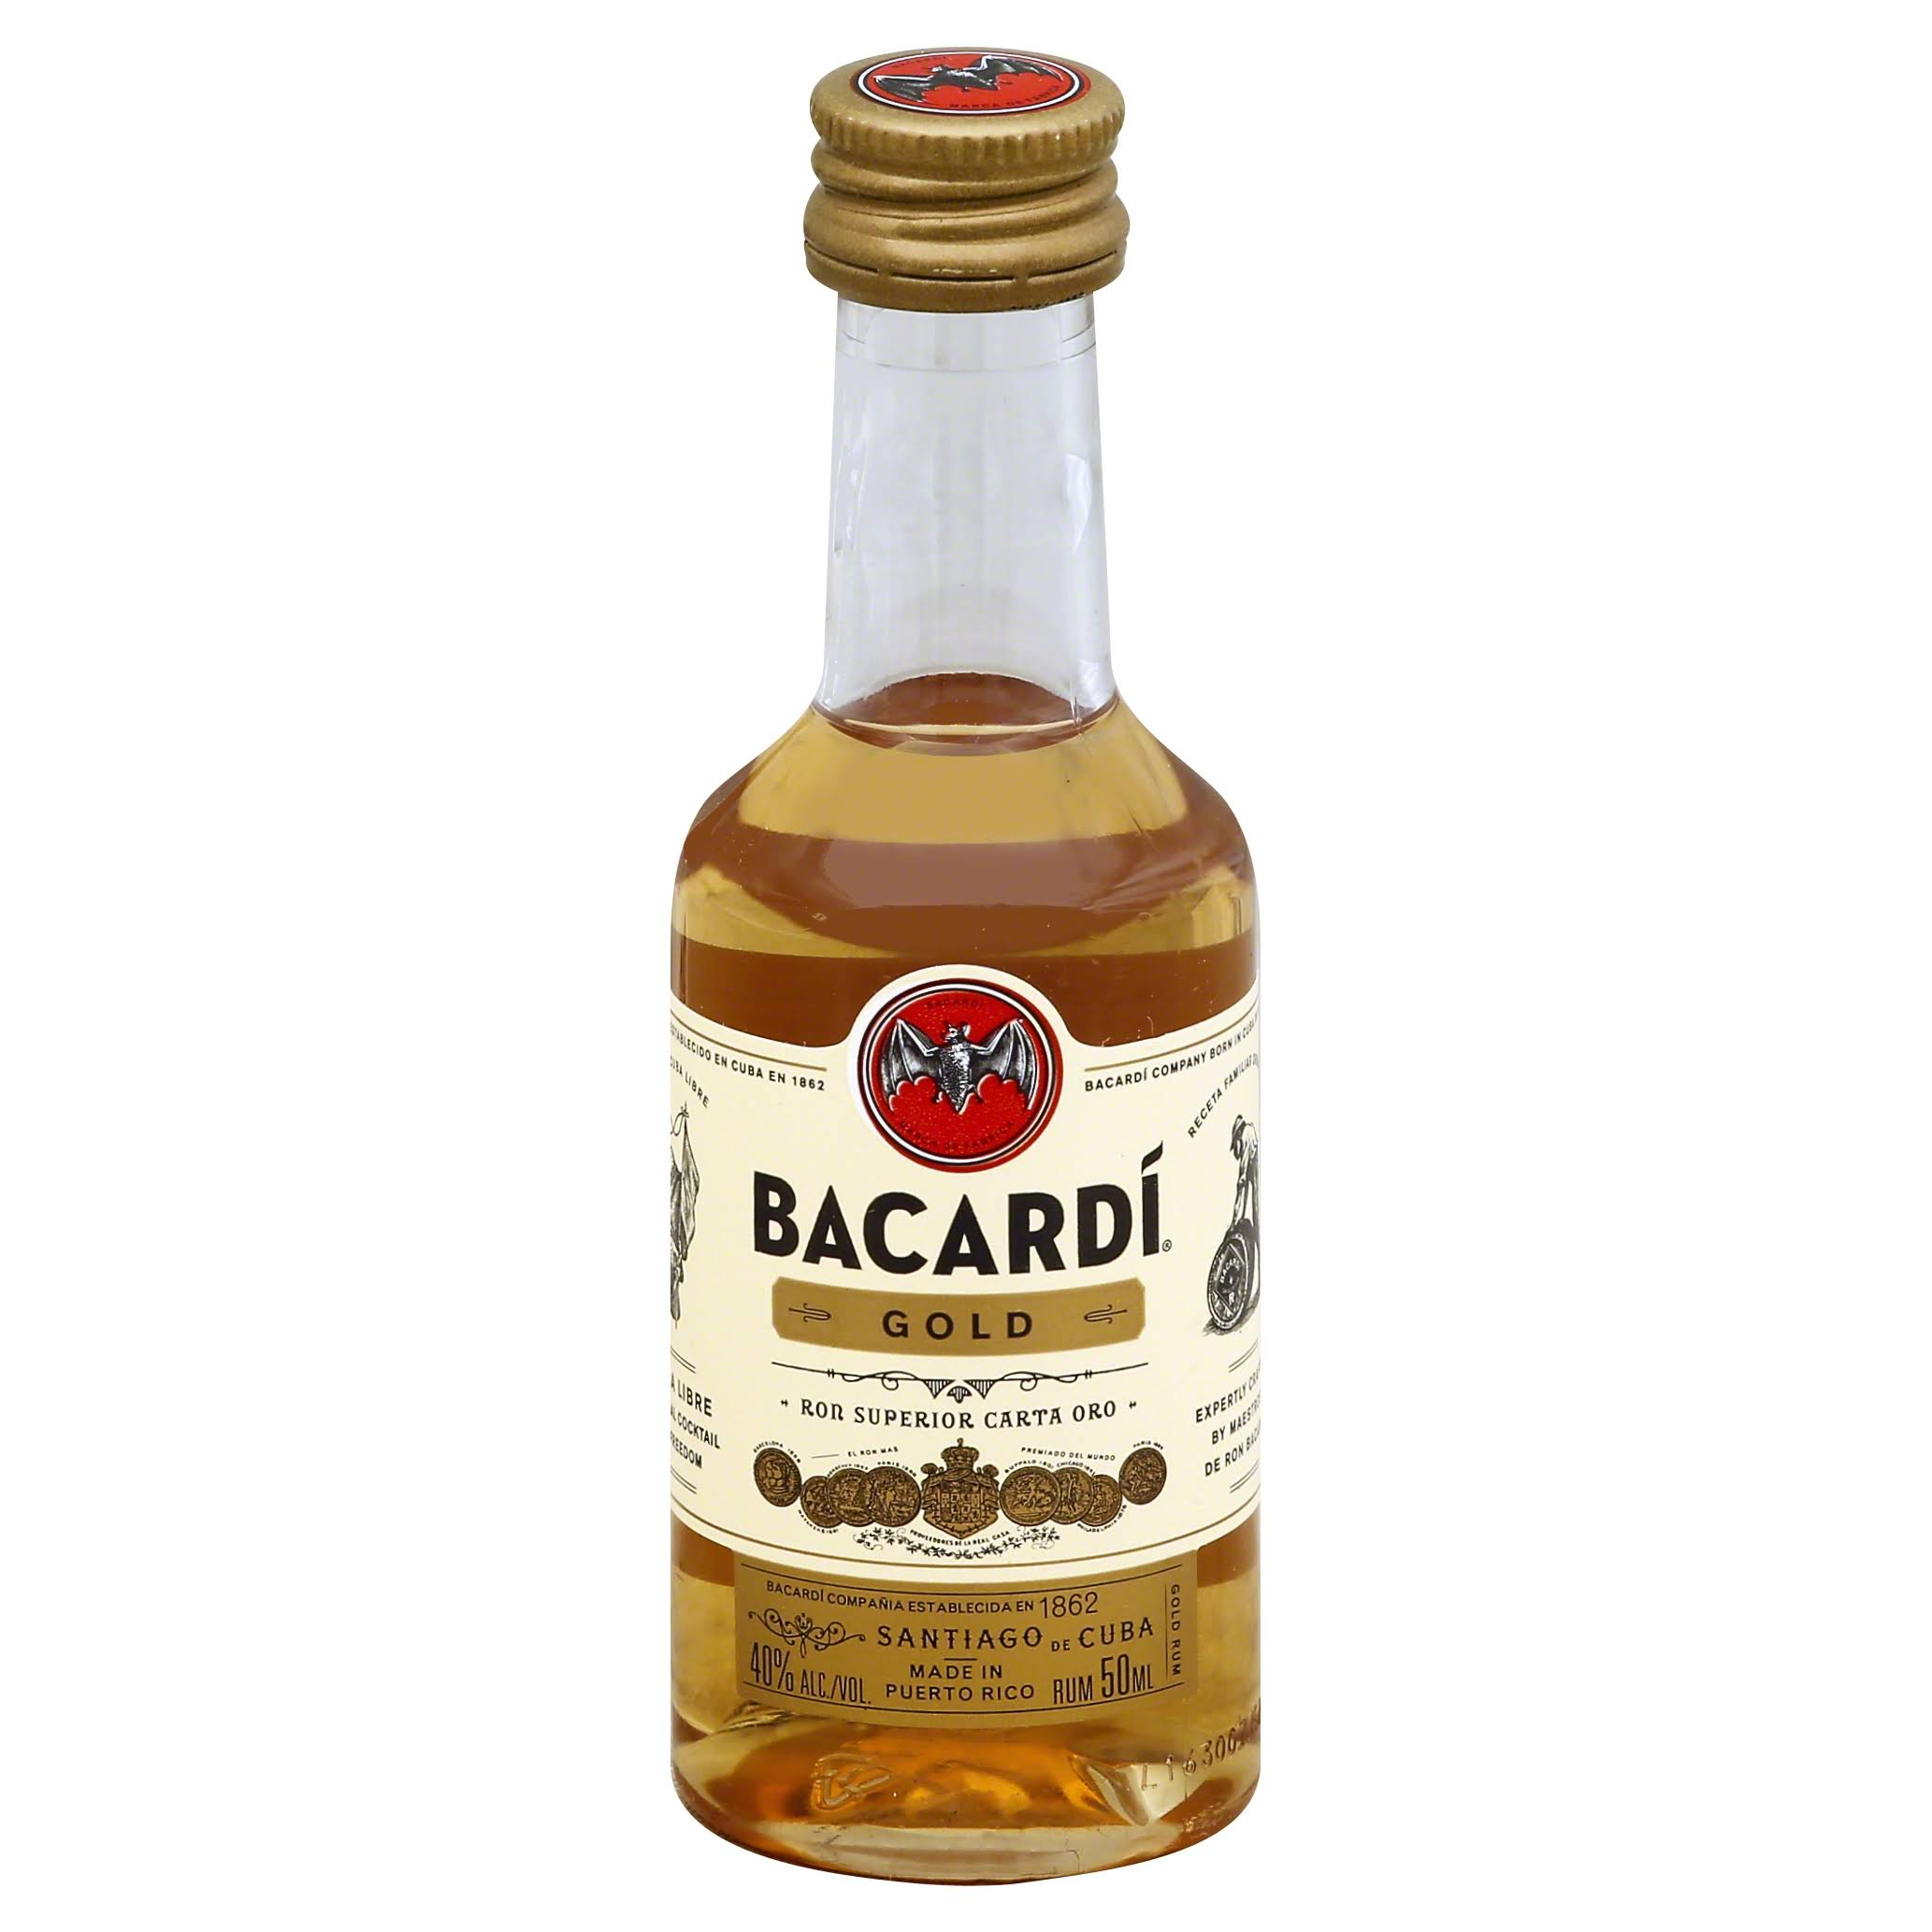 Bacardi Gold Rum - 50 ml bottle